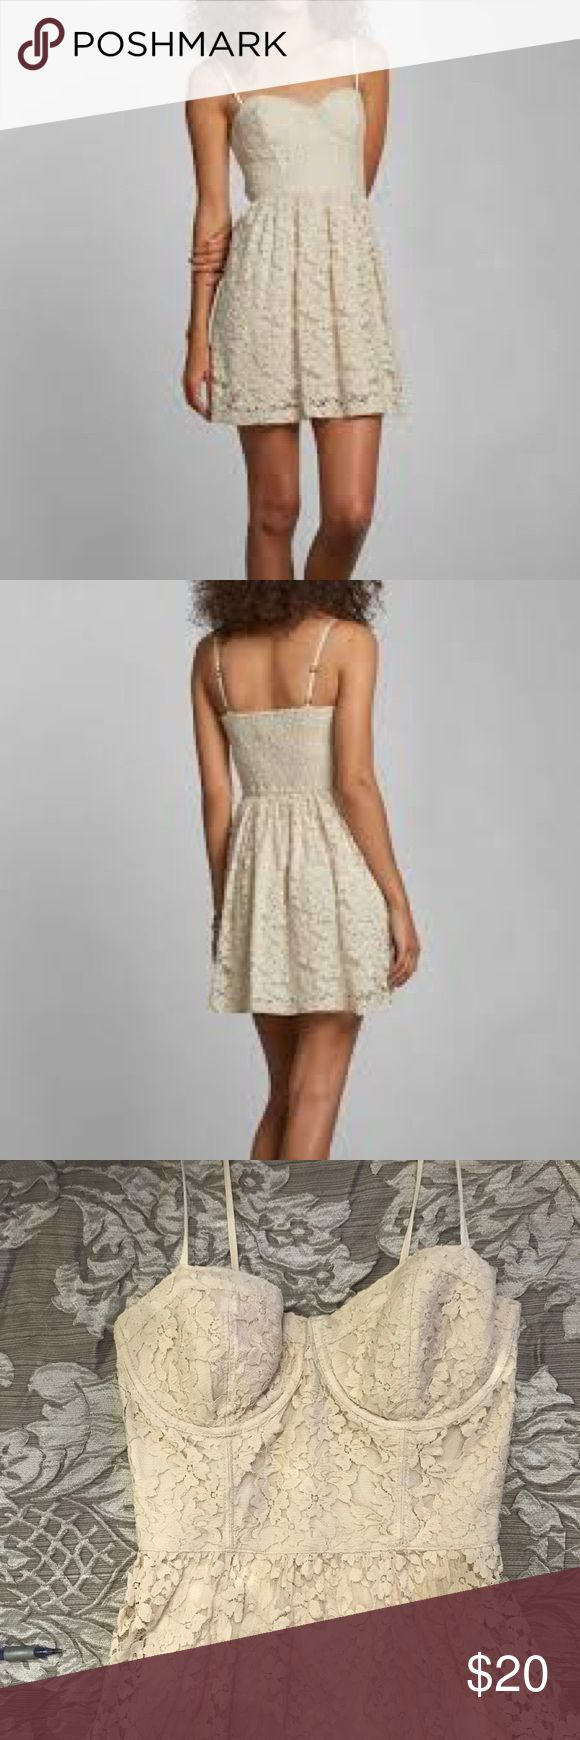 Abercrombie and Fitch Corset Style Dress •Fully lined lace dress with corset style torso •Worn a handful of times, no damage •Adjustable straps Abercrombie & Fitch Dresses Mini